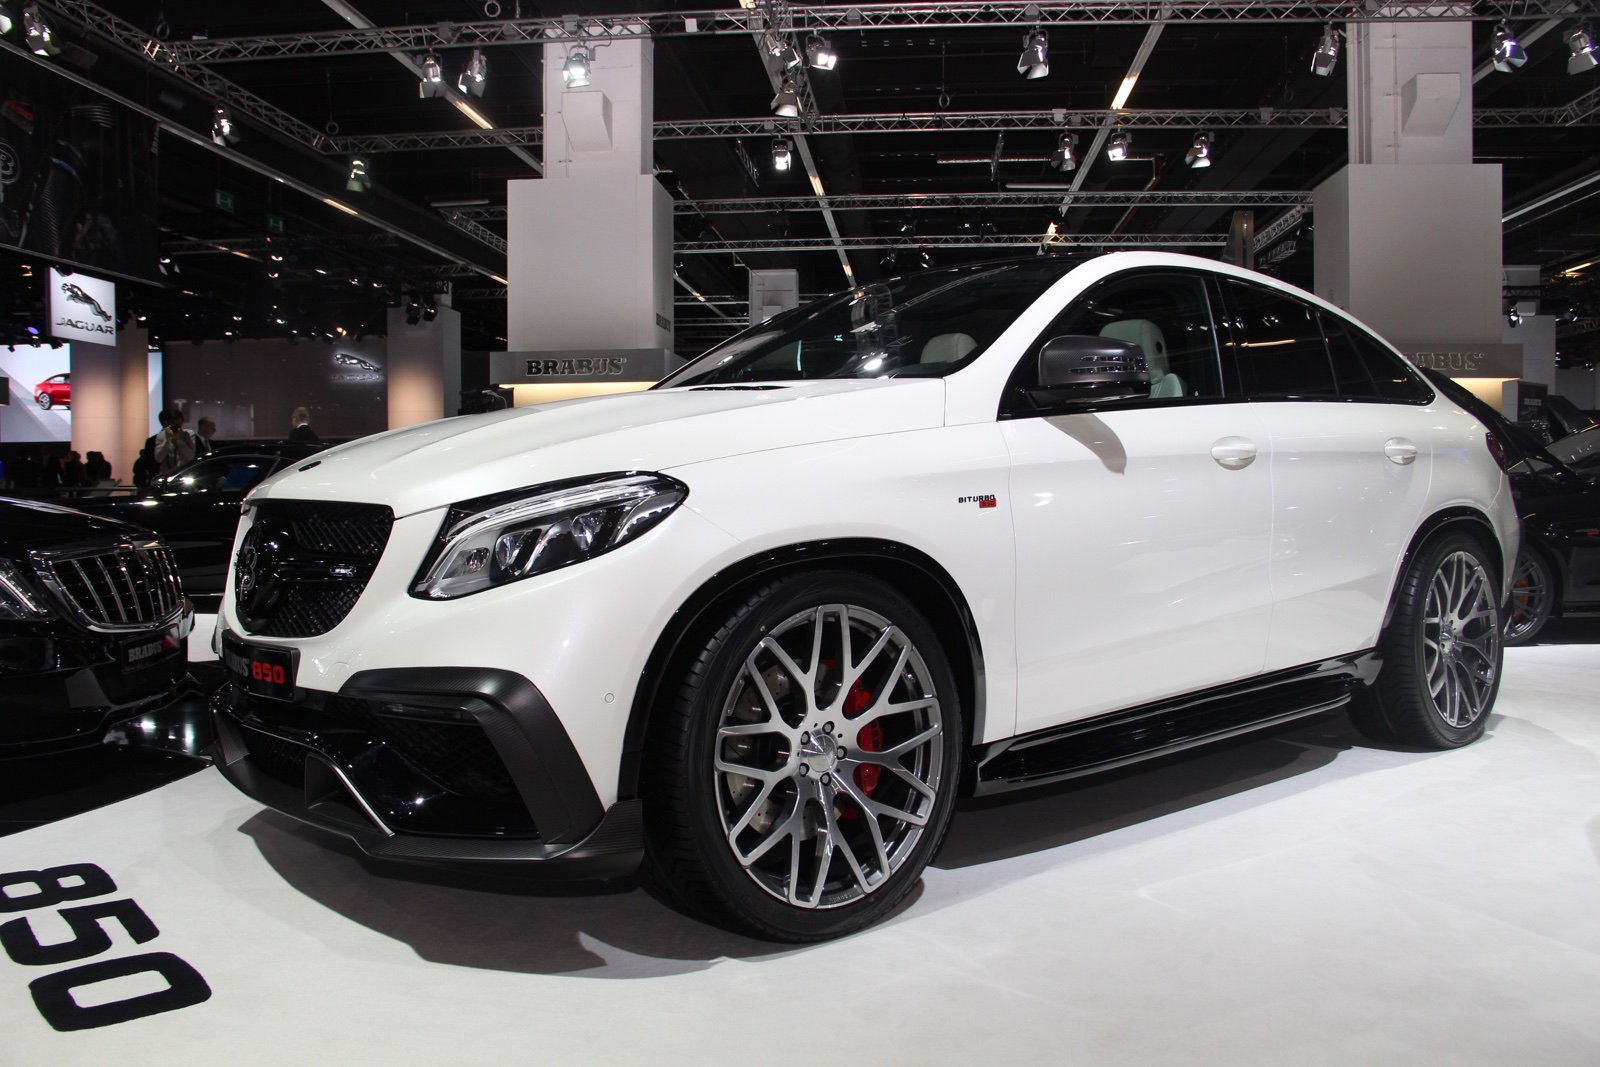 BRABUS Mercedes-Benz GLE 63 Coupe with 850HP